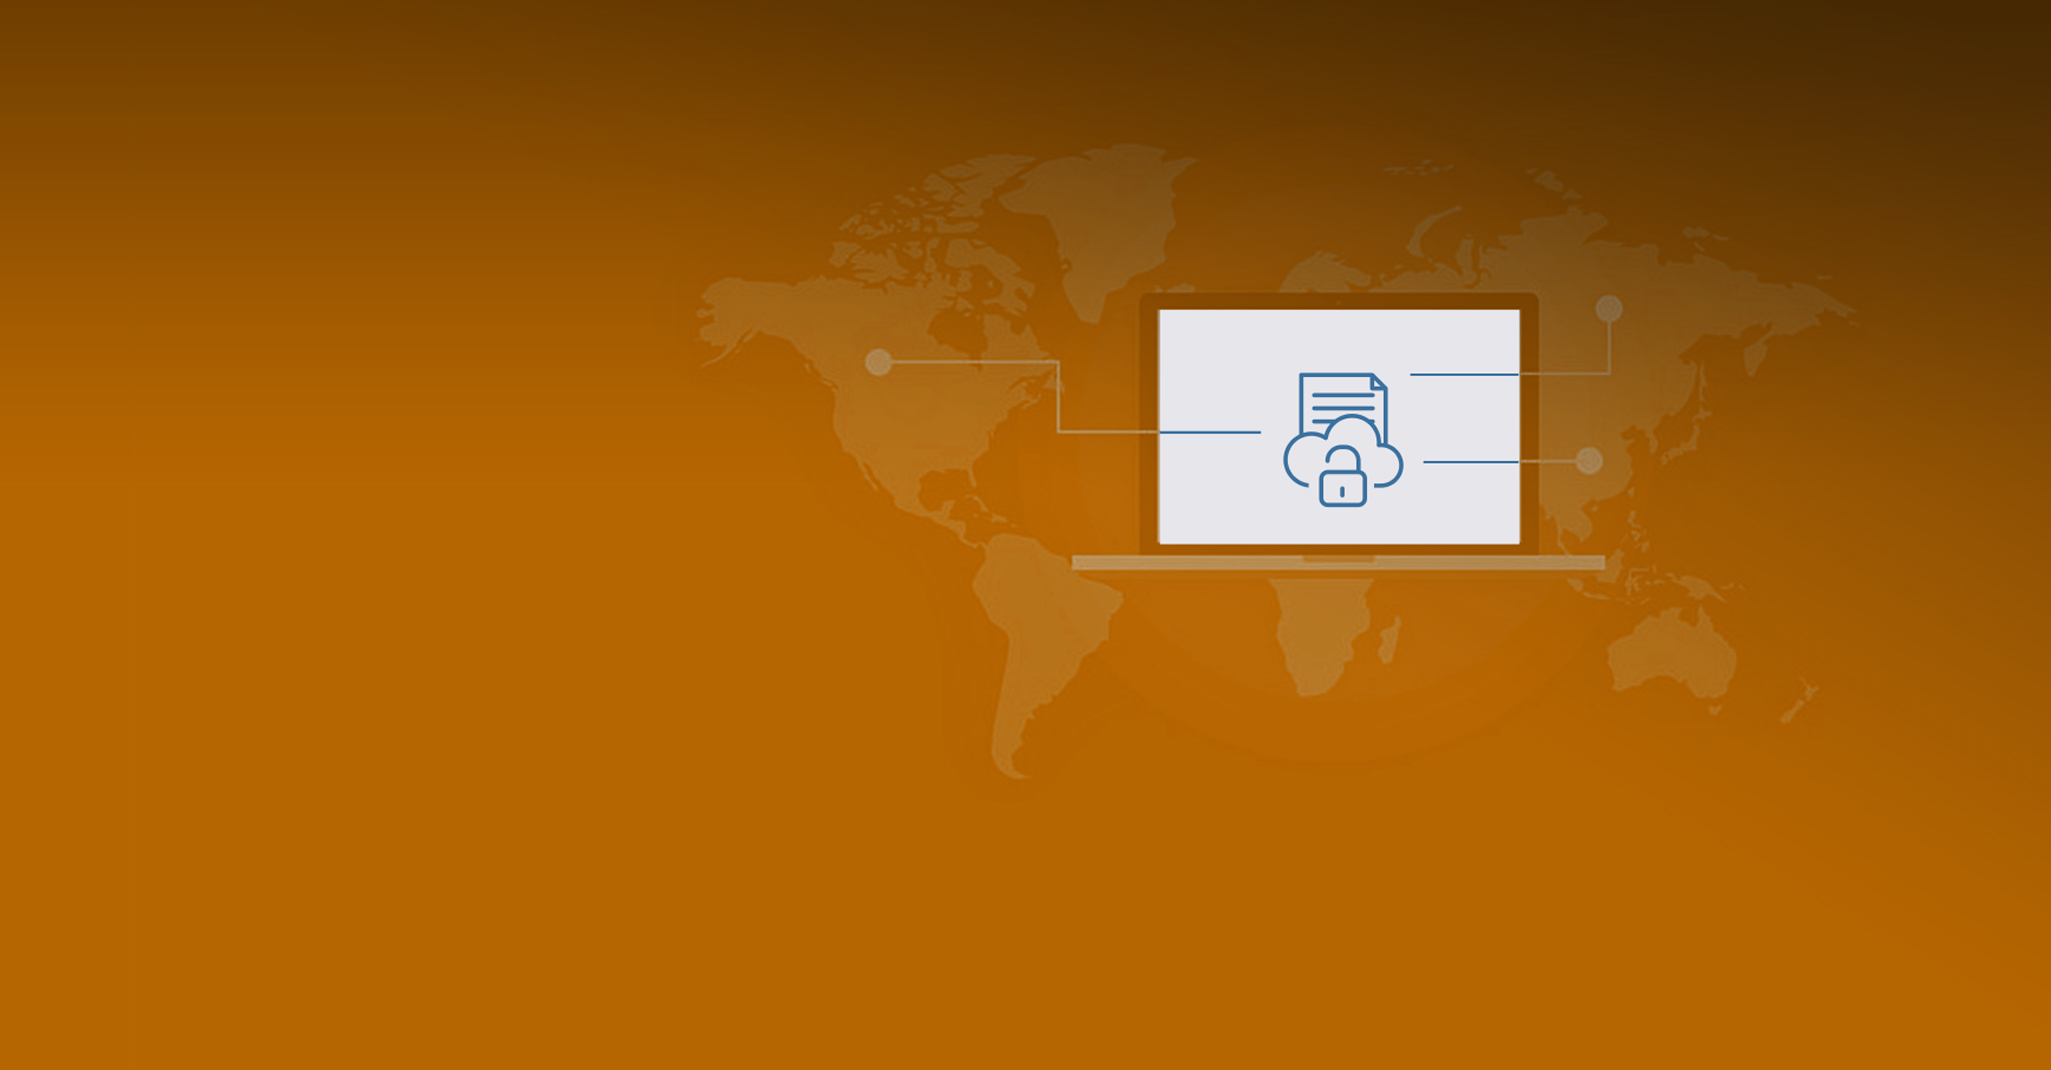 orange background with world map in background and desktop screen on top displaying lock, cloud and document icon